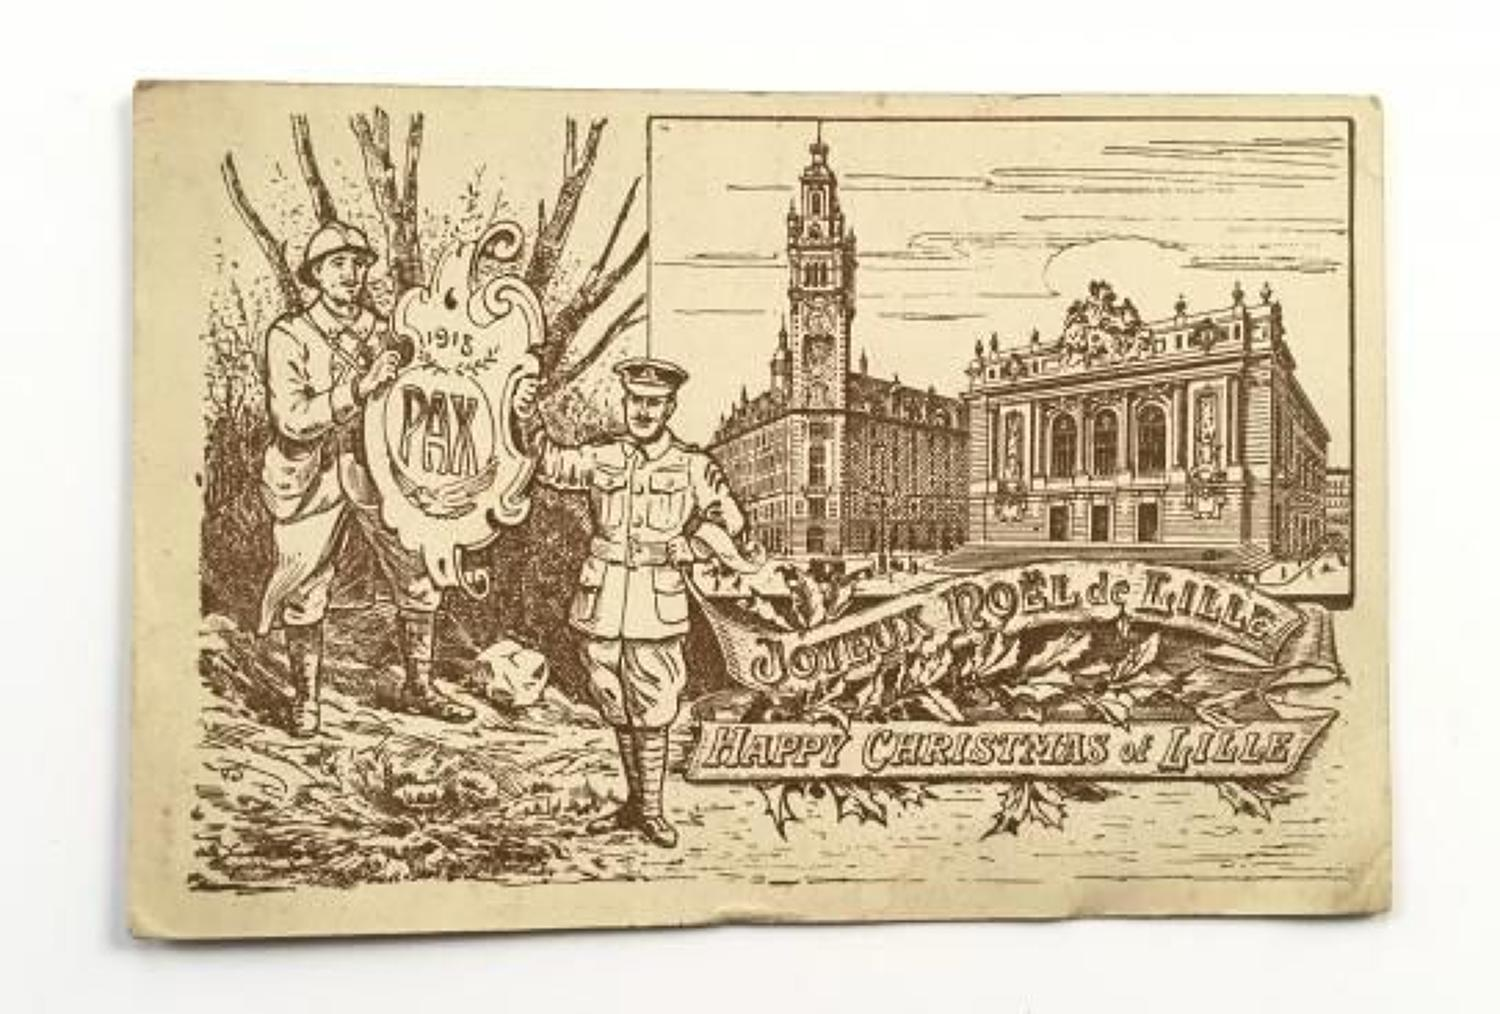 WW1 1915 Christmas Card Sent Home From France.